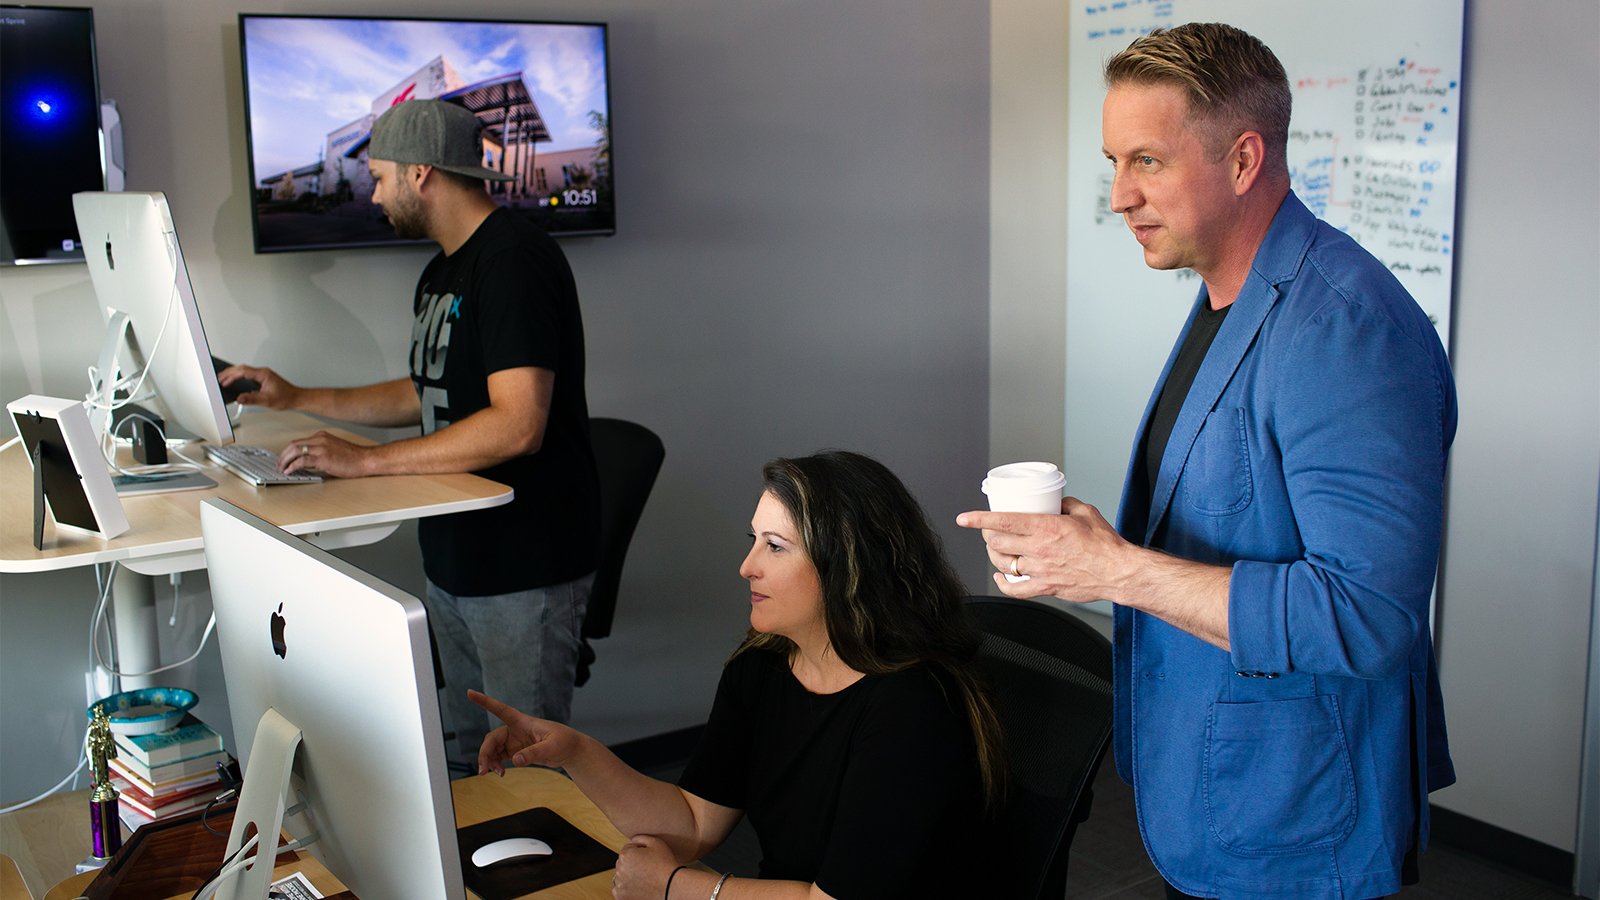 Bobby Gruenewald, right, innovation leader for Life Church, founder of the YouVersion Bible app, works with his team in Edmond, Okla., on June 26, 2018. Celebrating its 10th anniversary, the app has been downloaded on 330 million devices and in every country in the world, according to the church. Photo courtesy of Life Church